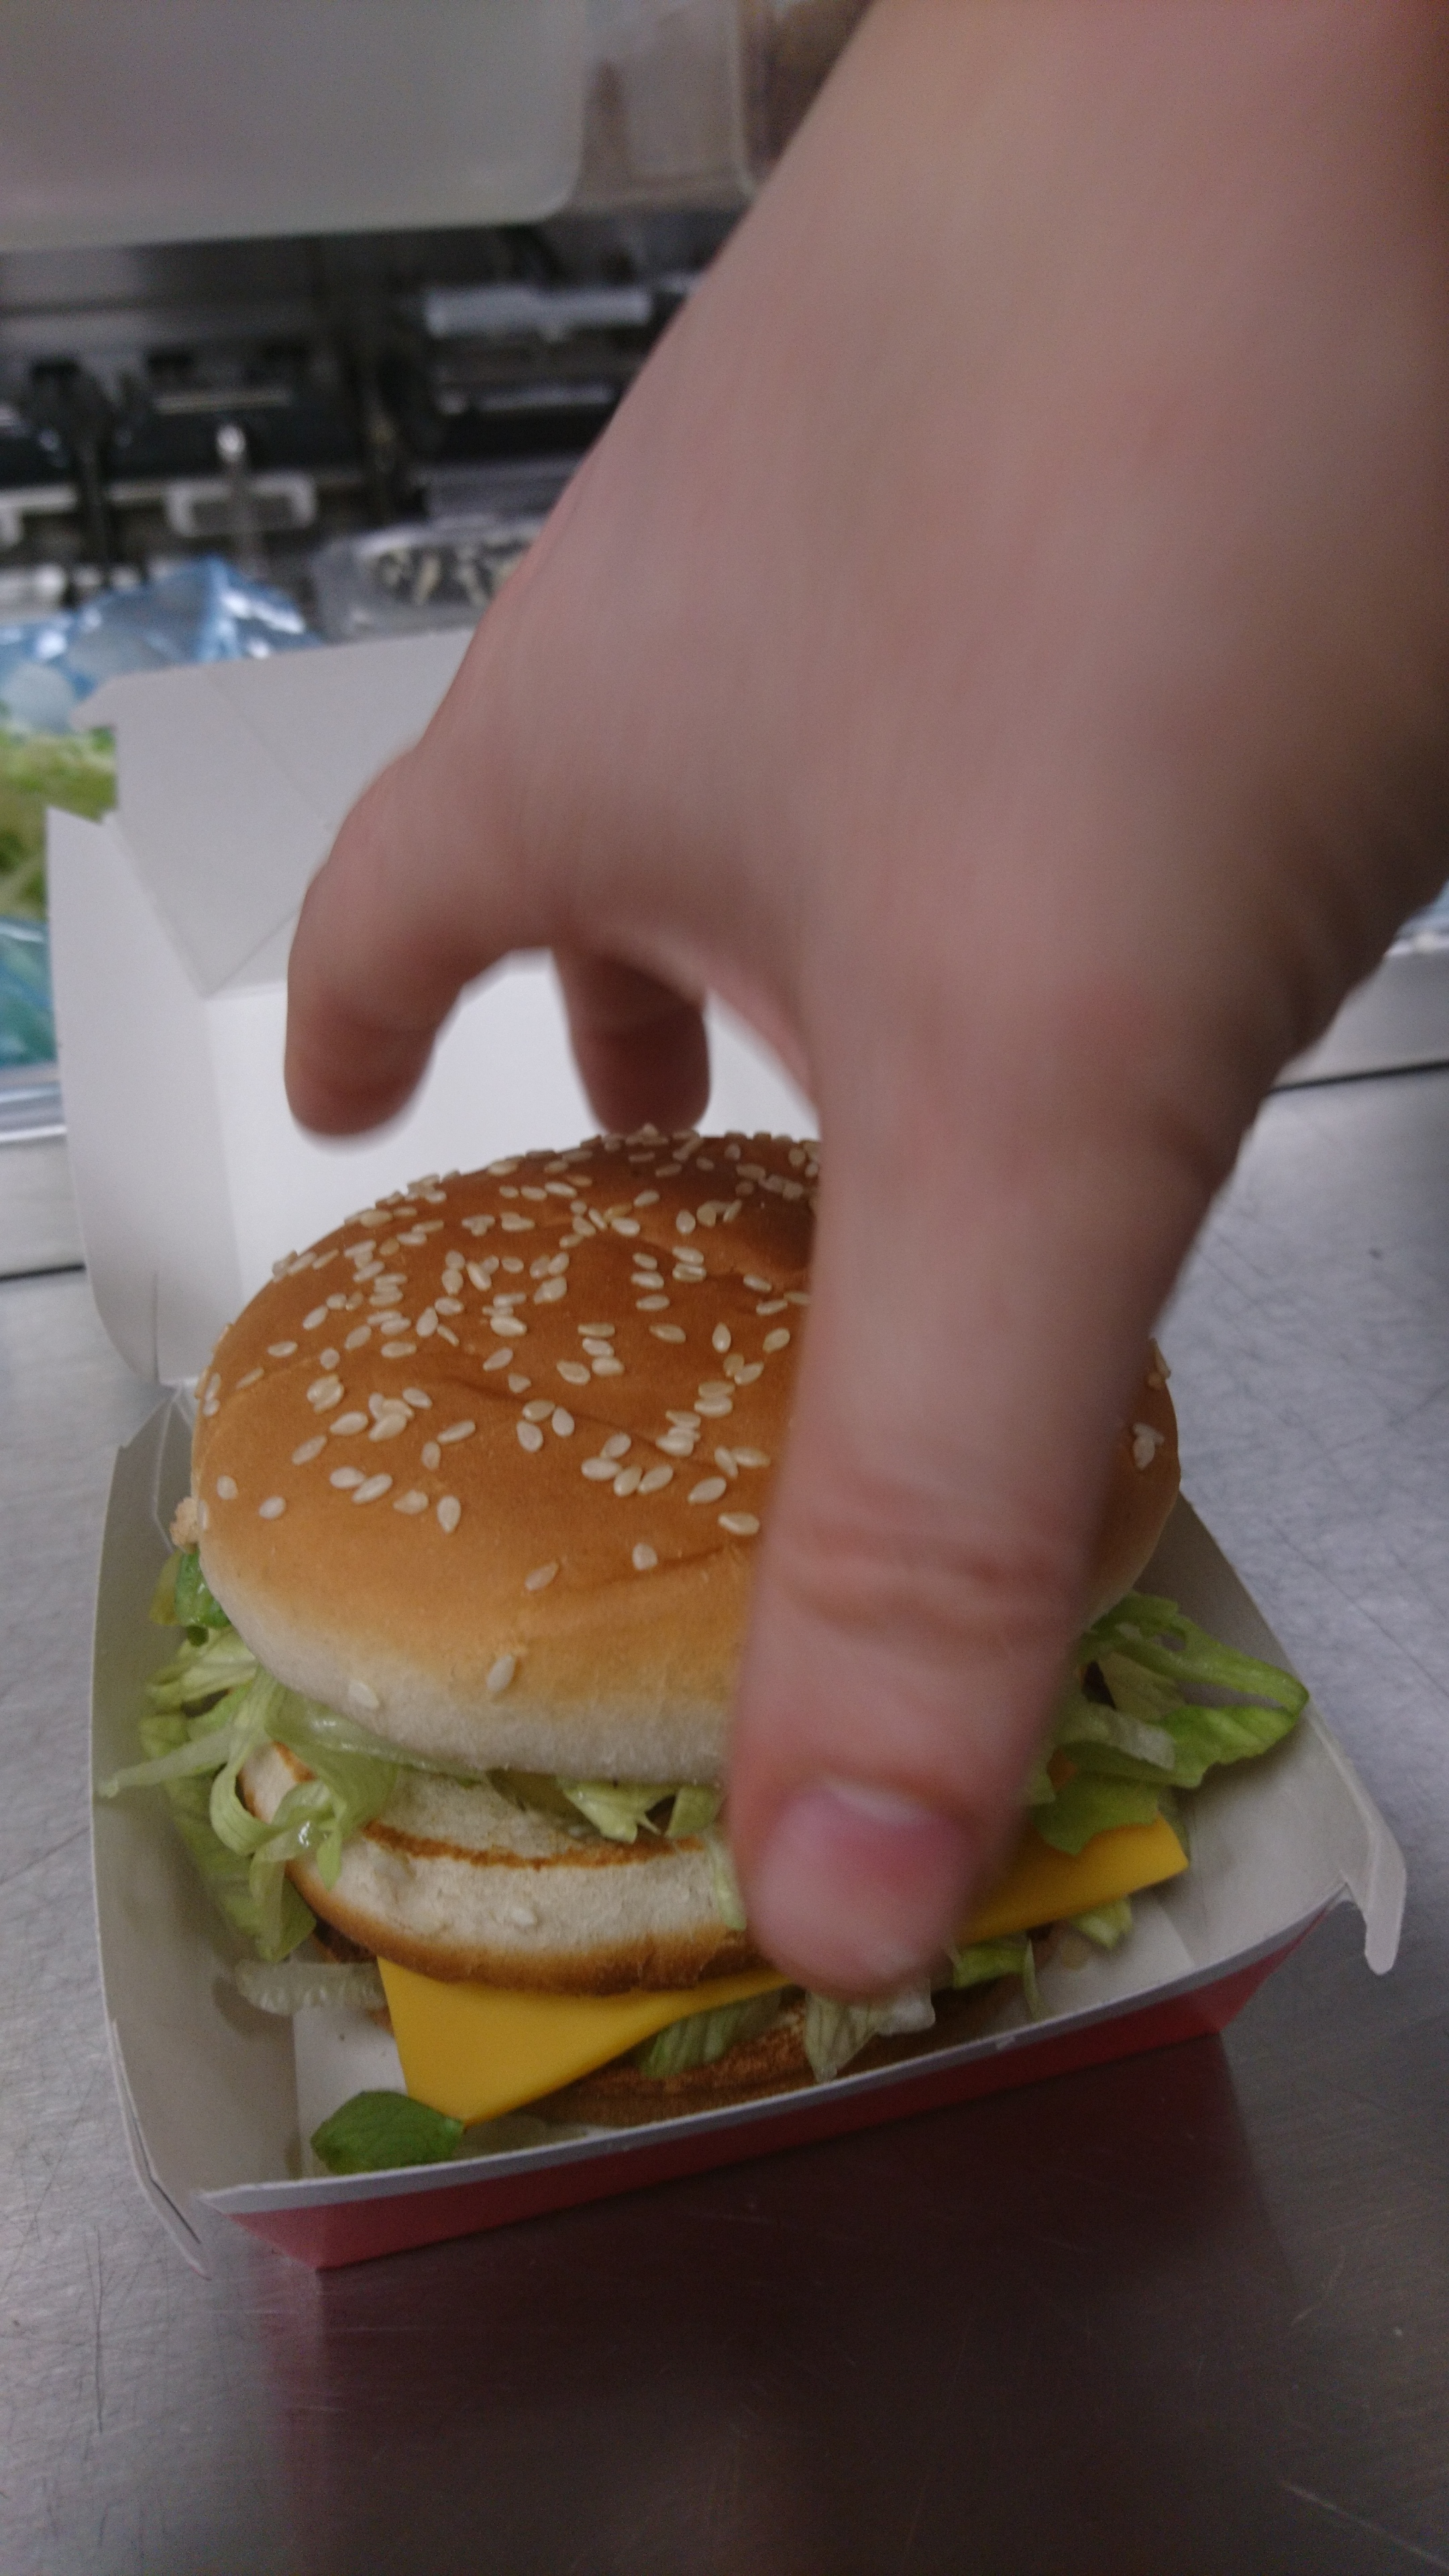 Looks like I made the world's smallest Big Mac! It really was full-size, honest!